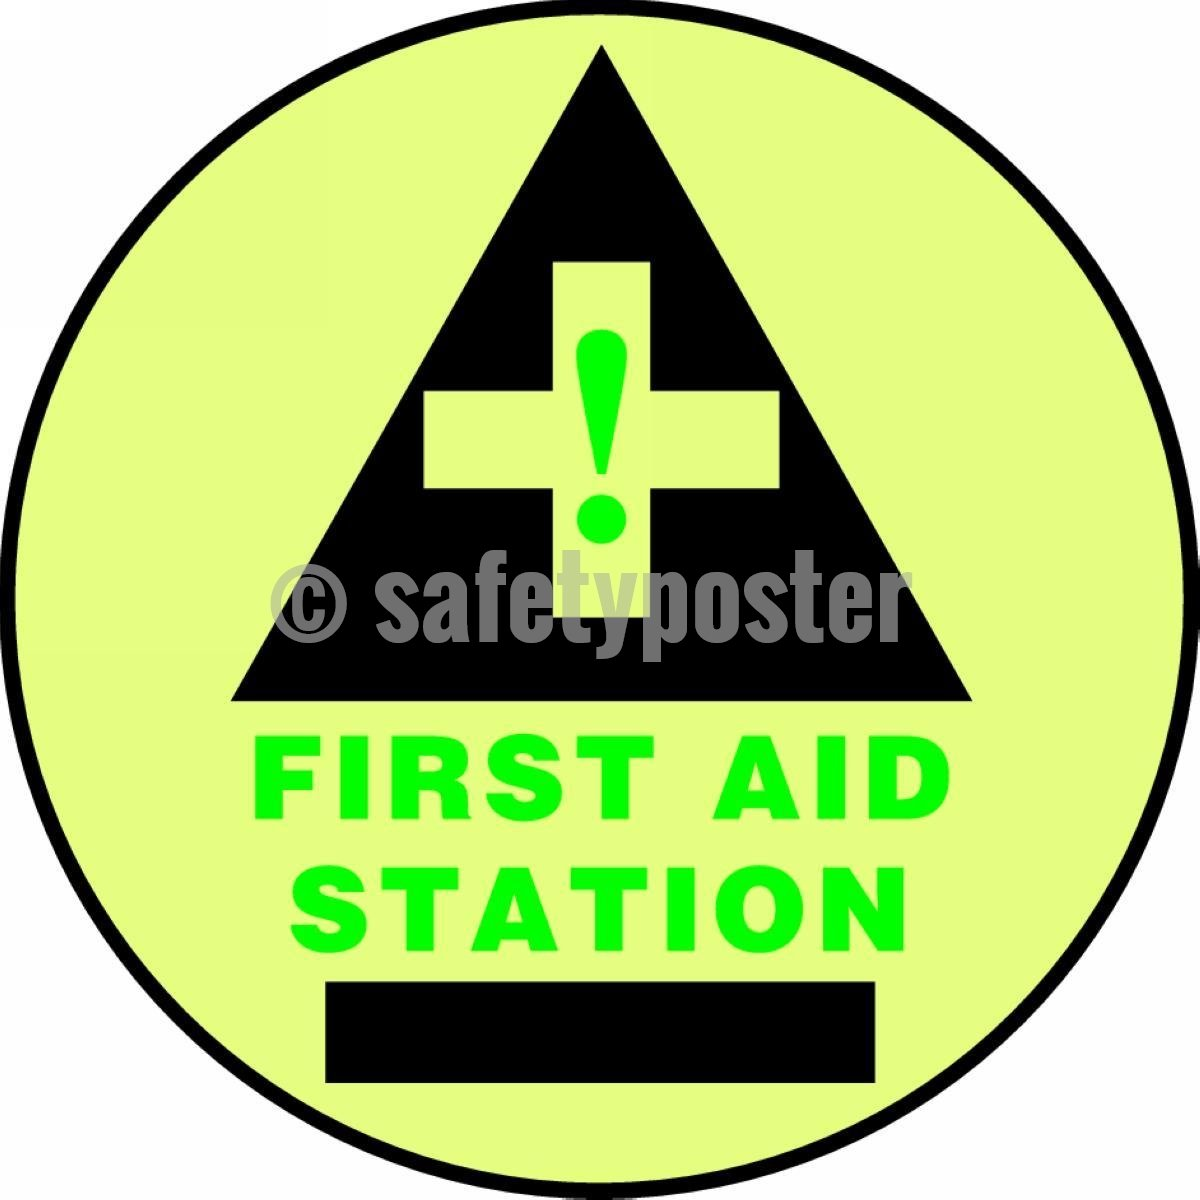 First Aid Station - Glow Floor Sign Adhesive Signs